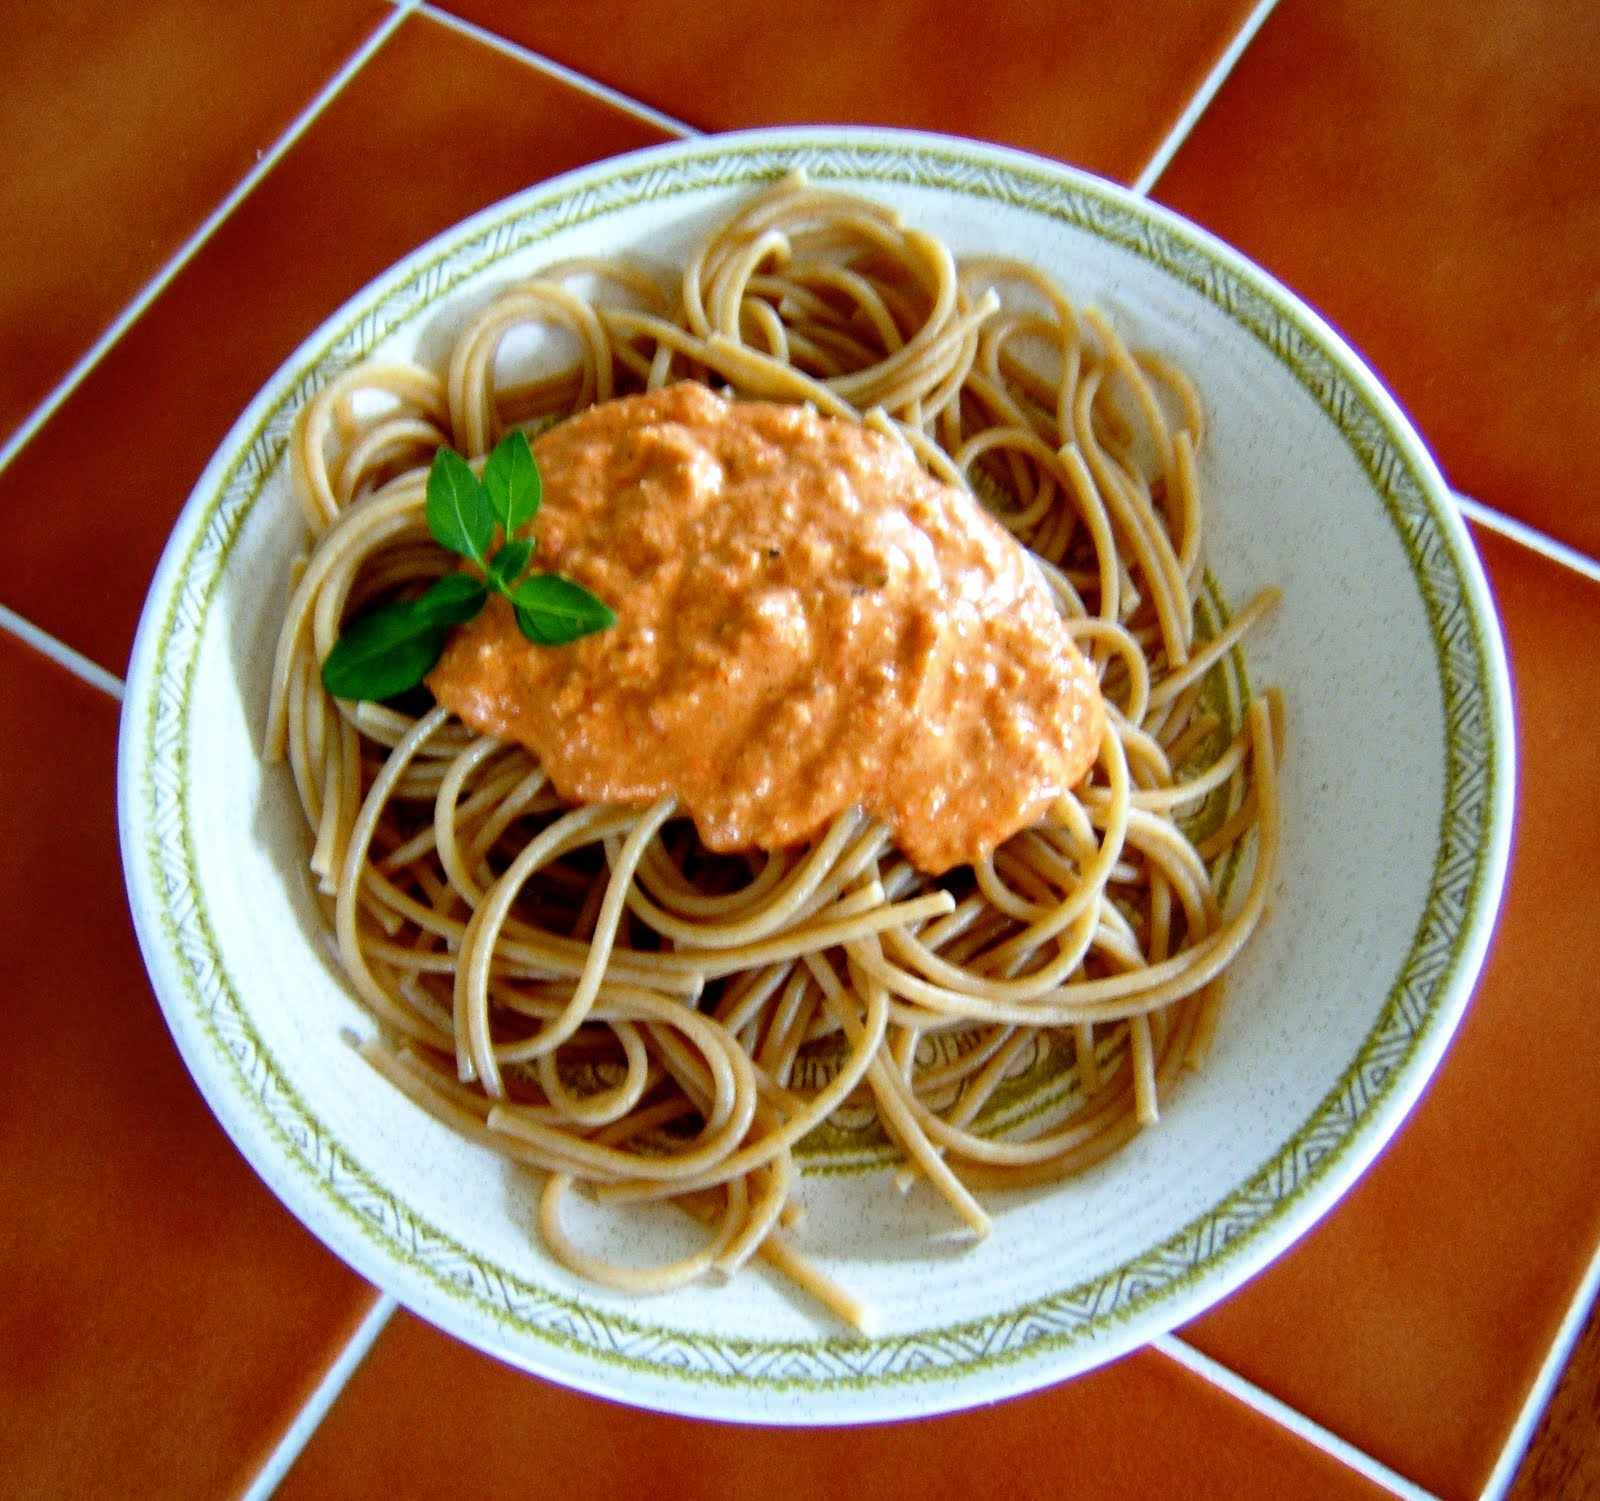 Roasted Red Pepper Cashew Sauce (over Whole Wheat Spaghetti)